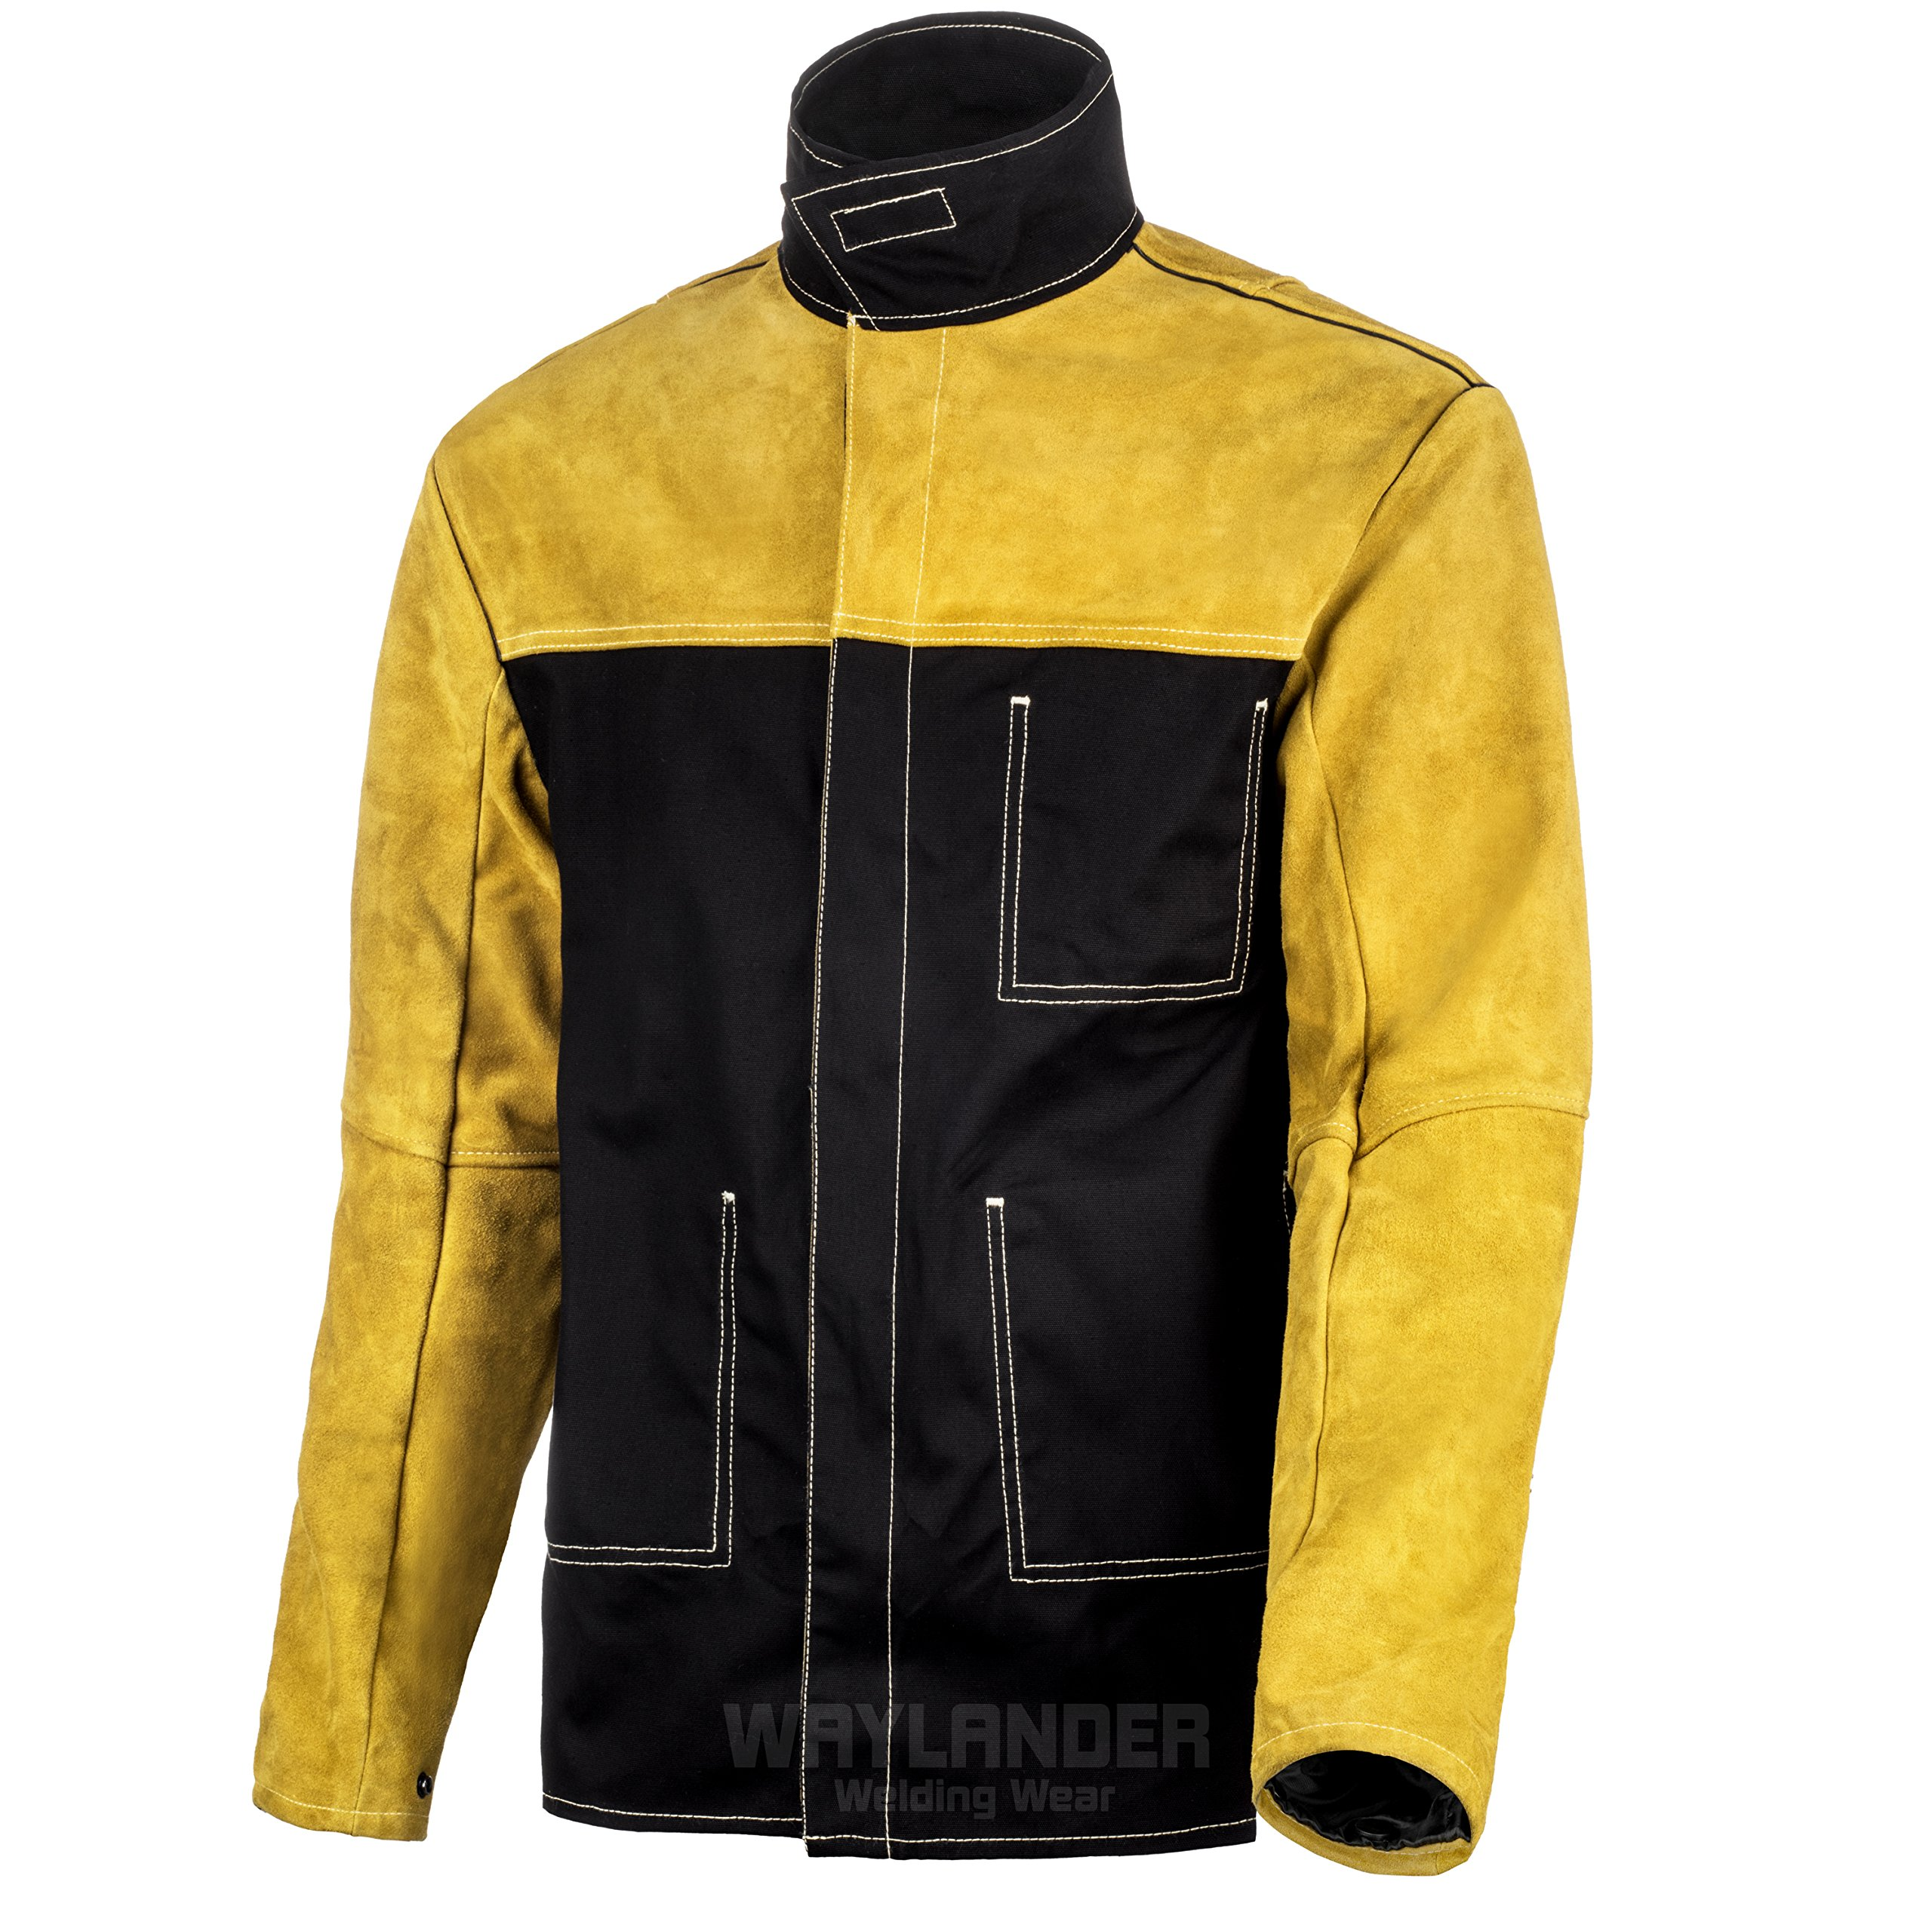 Waylander Welding Jacket Large Split Leather Heat Fire Resistant Cotton Kevlar Stitched Cowhide … by Waylander Welding